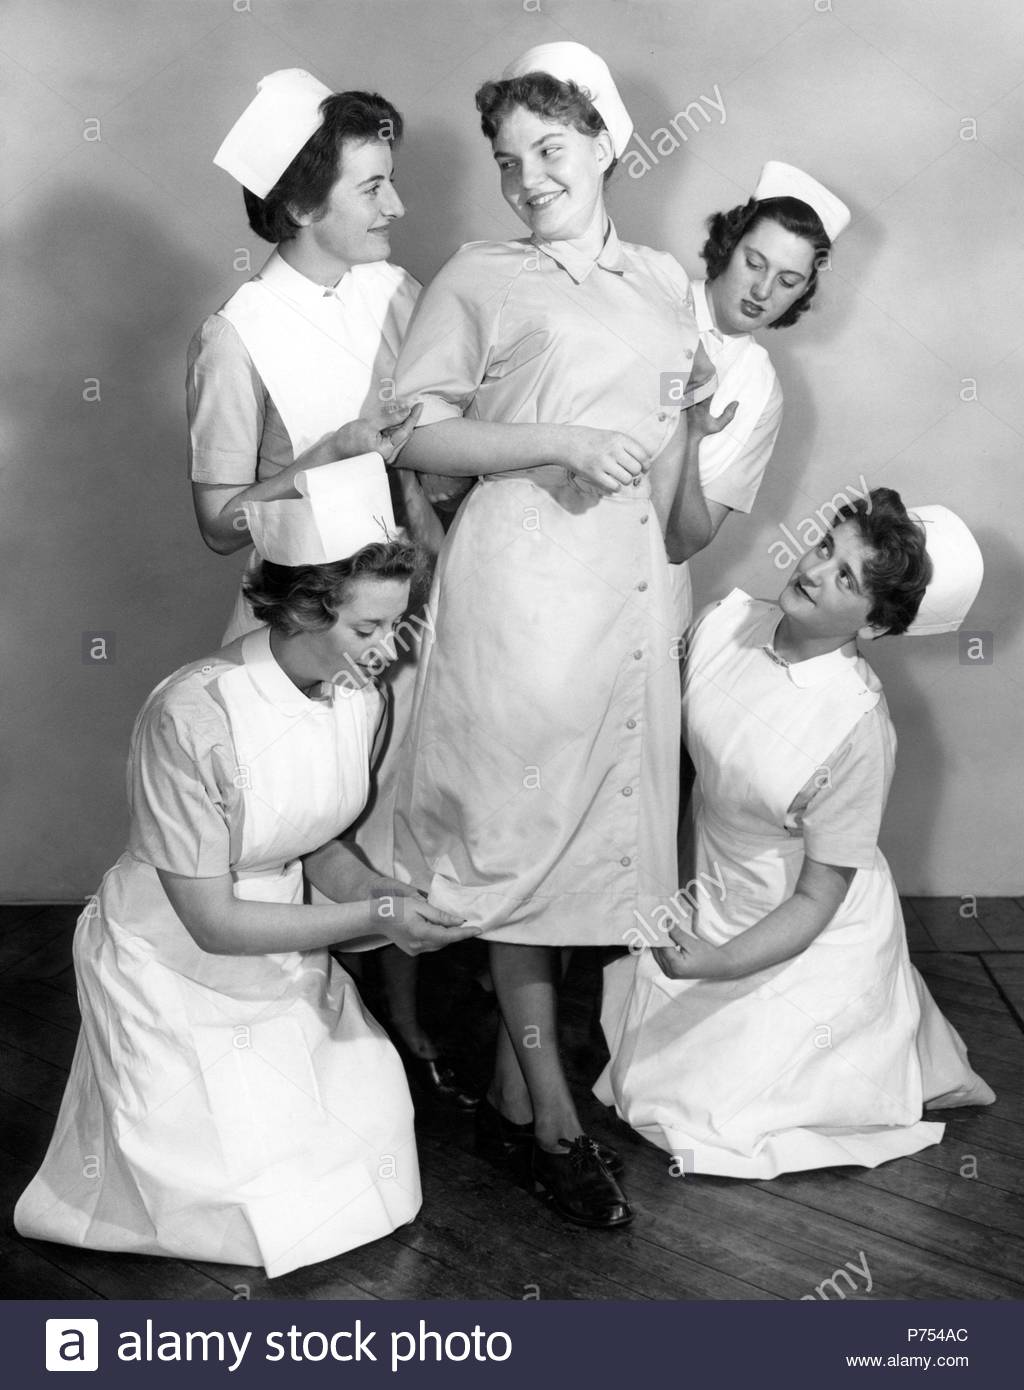 File photo dated 18/12/58 of a new design of uniform being modelled by, then 20-year-old student nurse Gene Williams (centre) at Clatterbridge Hospital, Bebington, Wirral, Cheshire, to be worn by National Health Service (NHS) nurses. - Stock Image